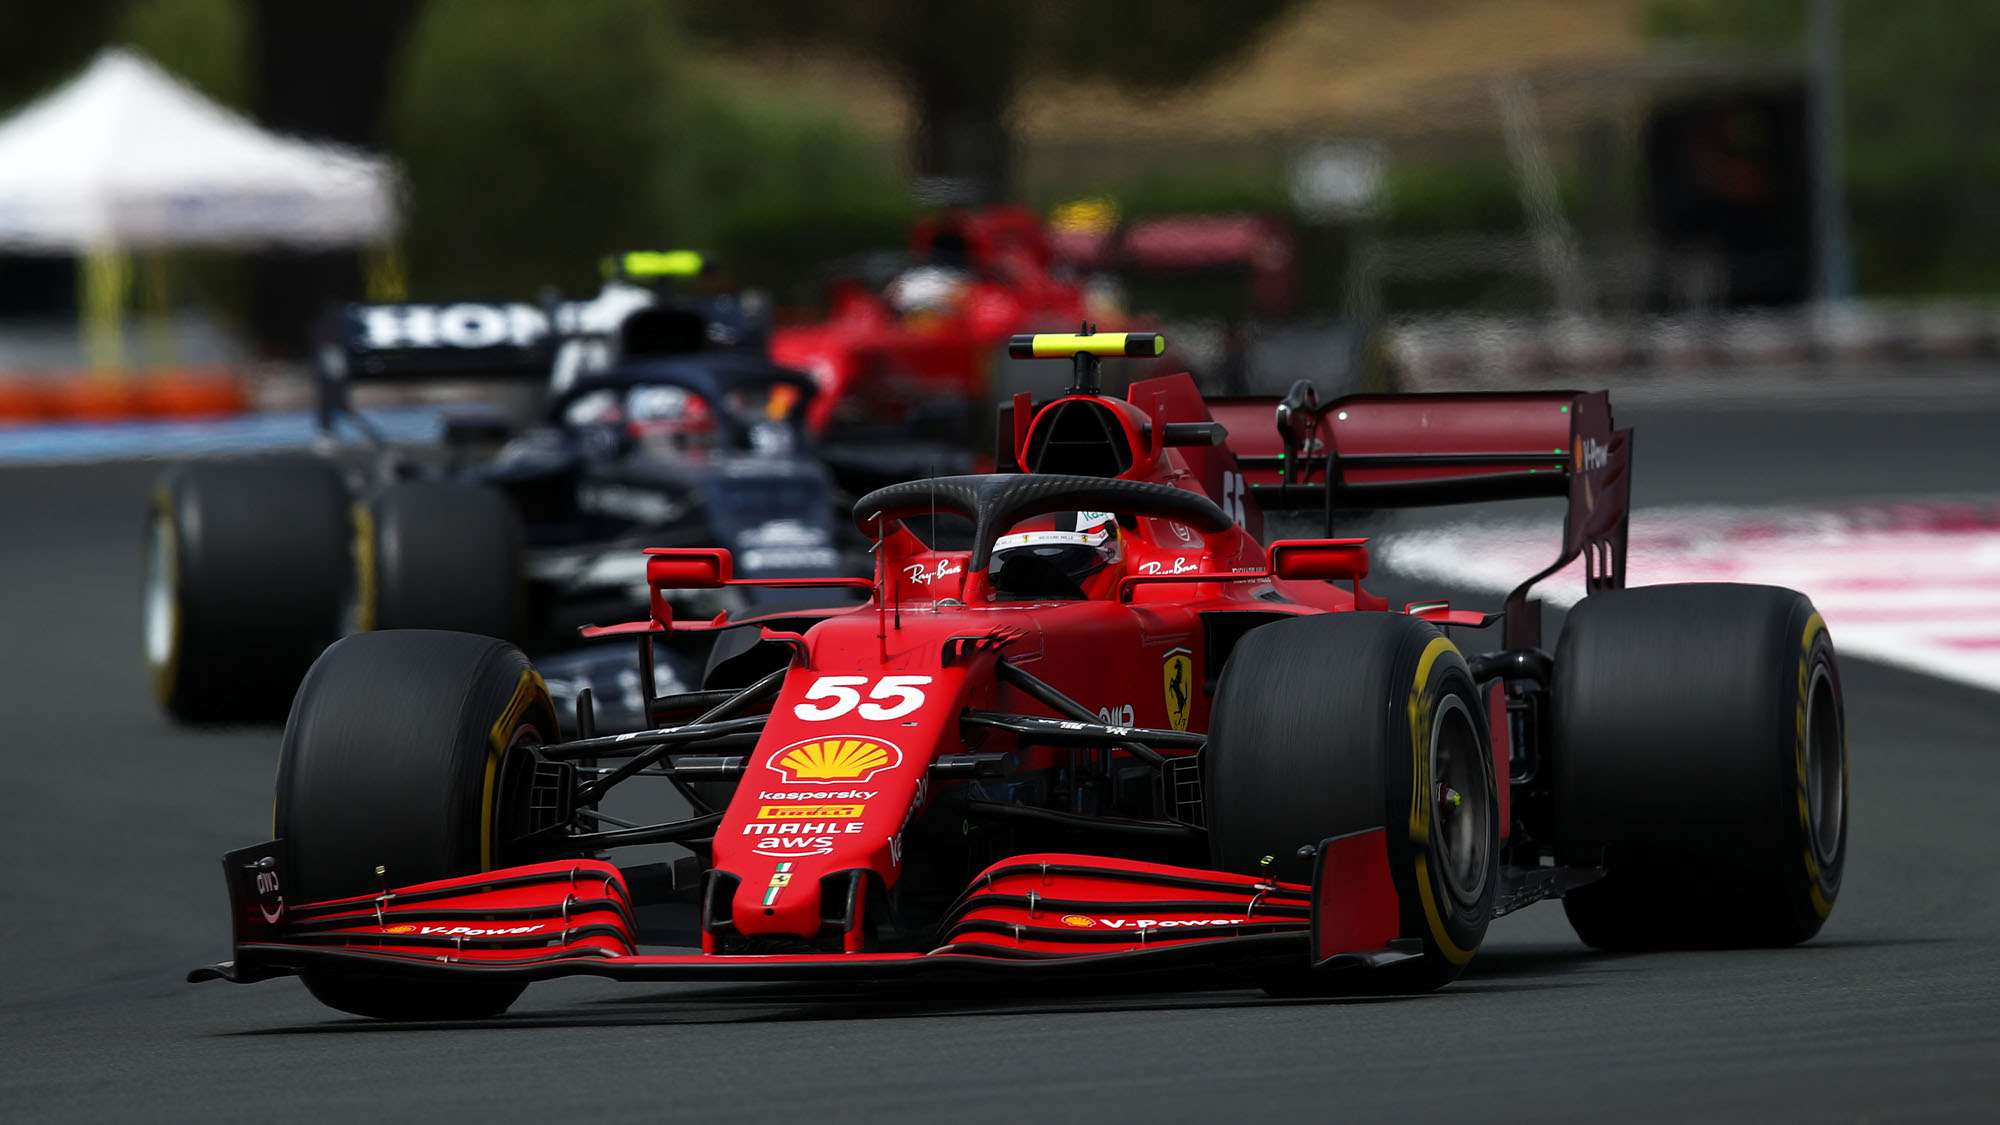 LE CASTELLET, FRANCE - JUNE 20: Carlos Sainz of Spain driving the (55) Scuderia Ferrari SF21 on track during the F1 Grand Prix of France at Circuit Paul Ricard on June 20, 2021 in Le Castellet, France. (Photo by Joe Portlock - Formula 1/Formula 1 via Getty Images)